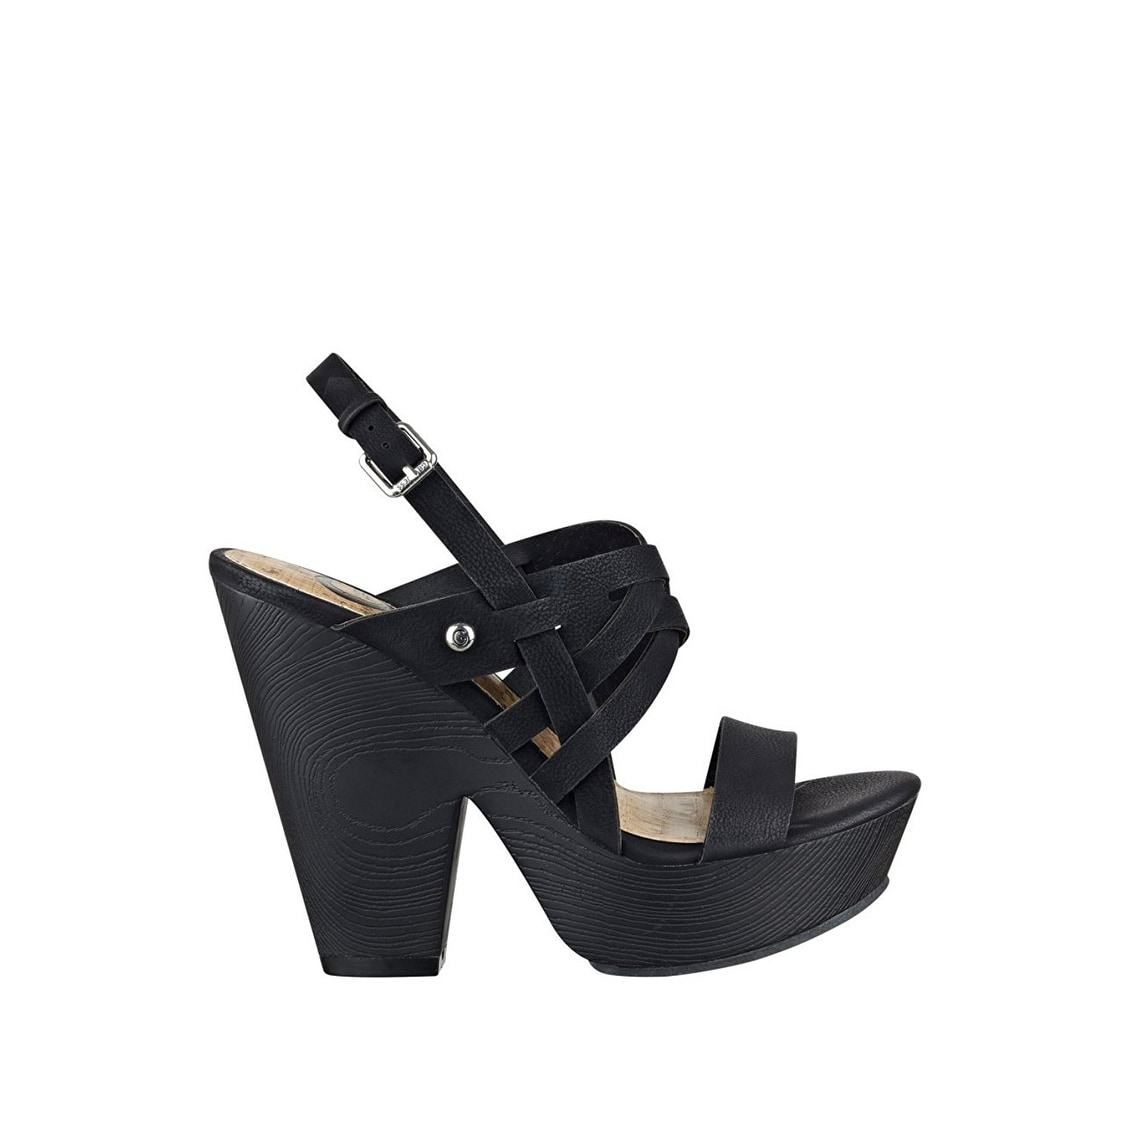 fb343416d1c597 Shop G by Guess Womens Saint Open Toe Casual Platform Sandals - Free  Shipping On Orders Over  45 - Overstock - 14778751